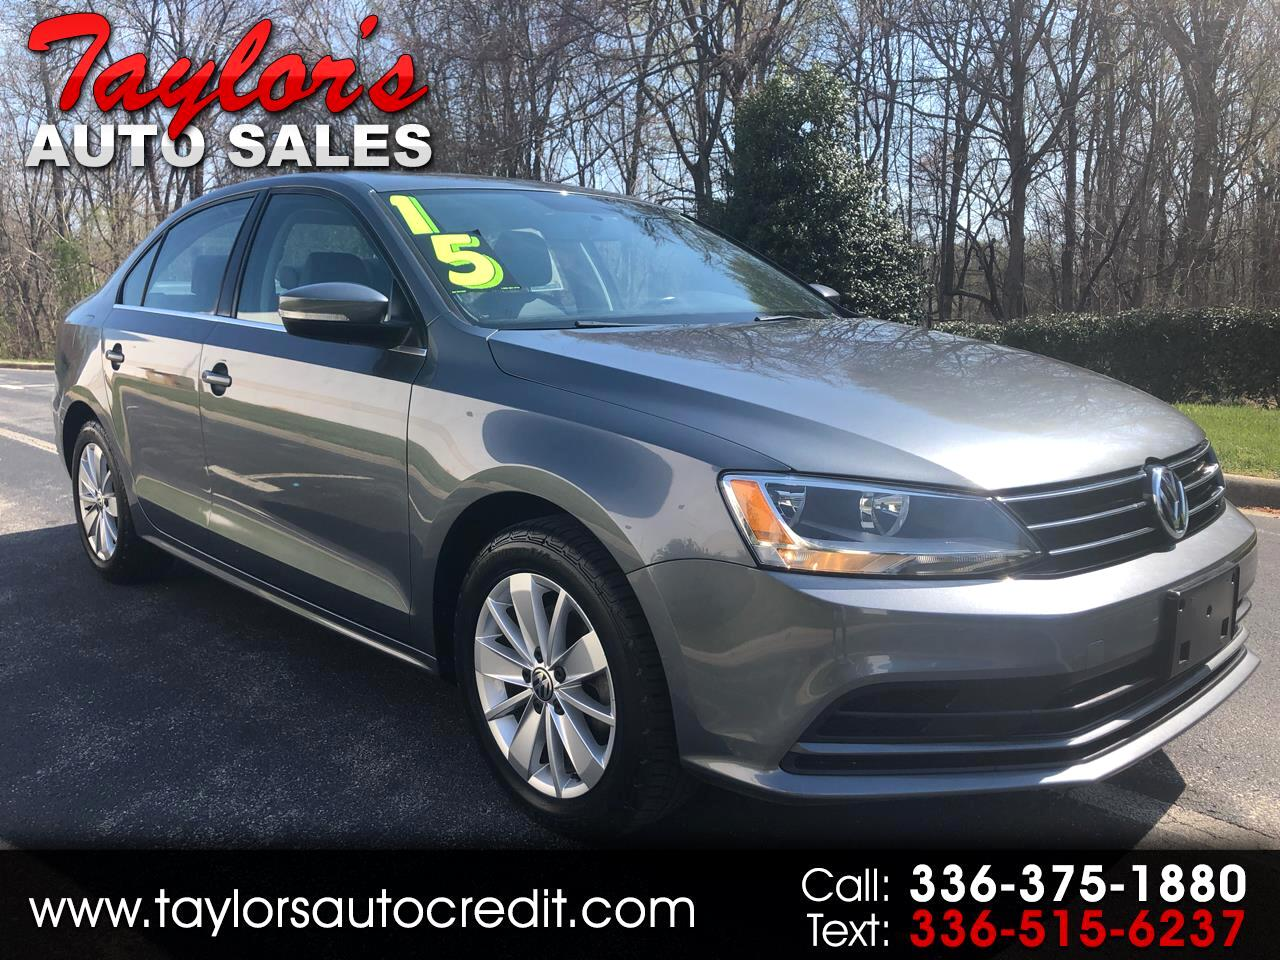 2015 Volkswagen Jetta Sedan 4dr Auto 1.8T SE w/Connectivity PZEV